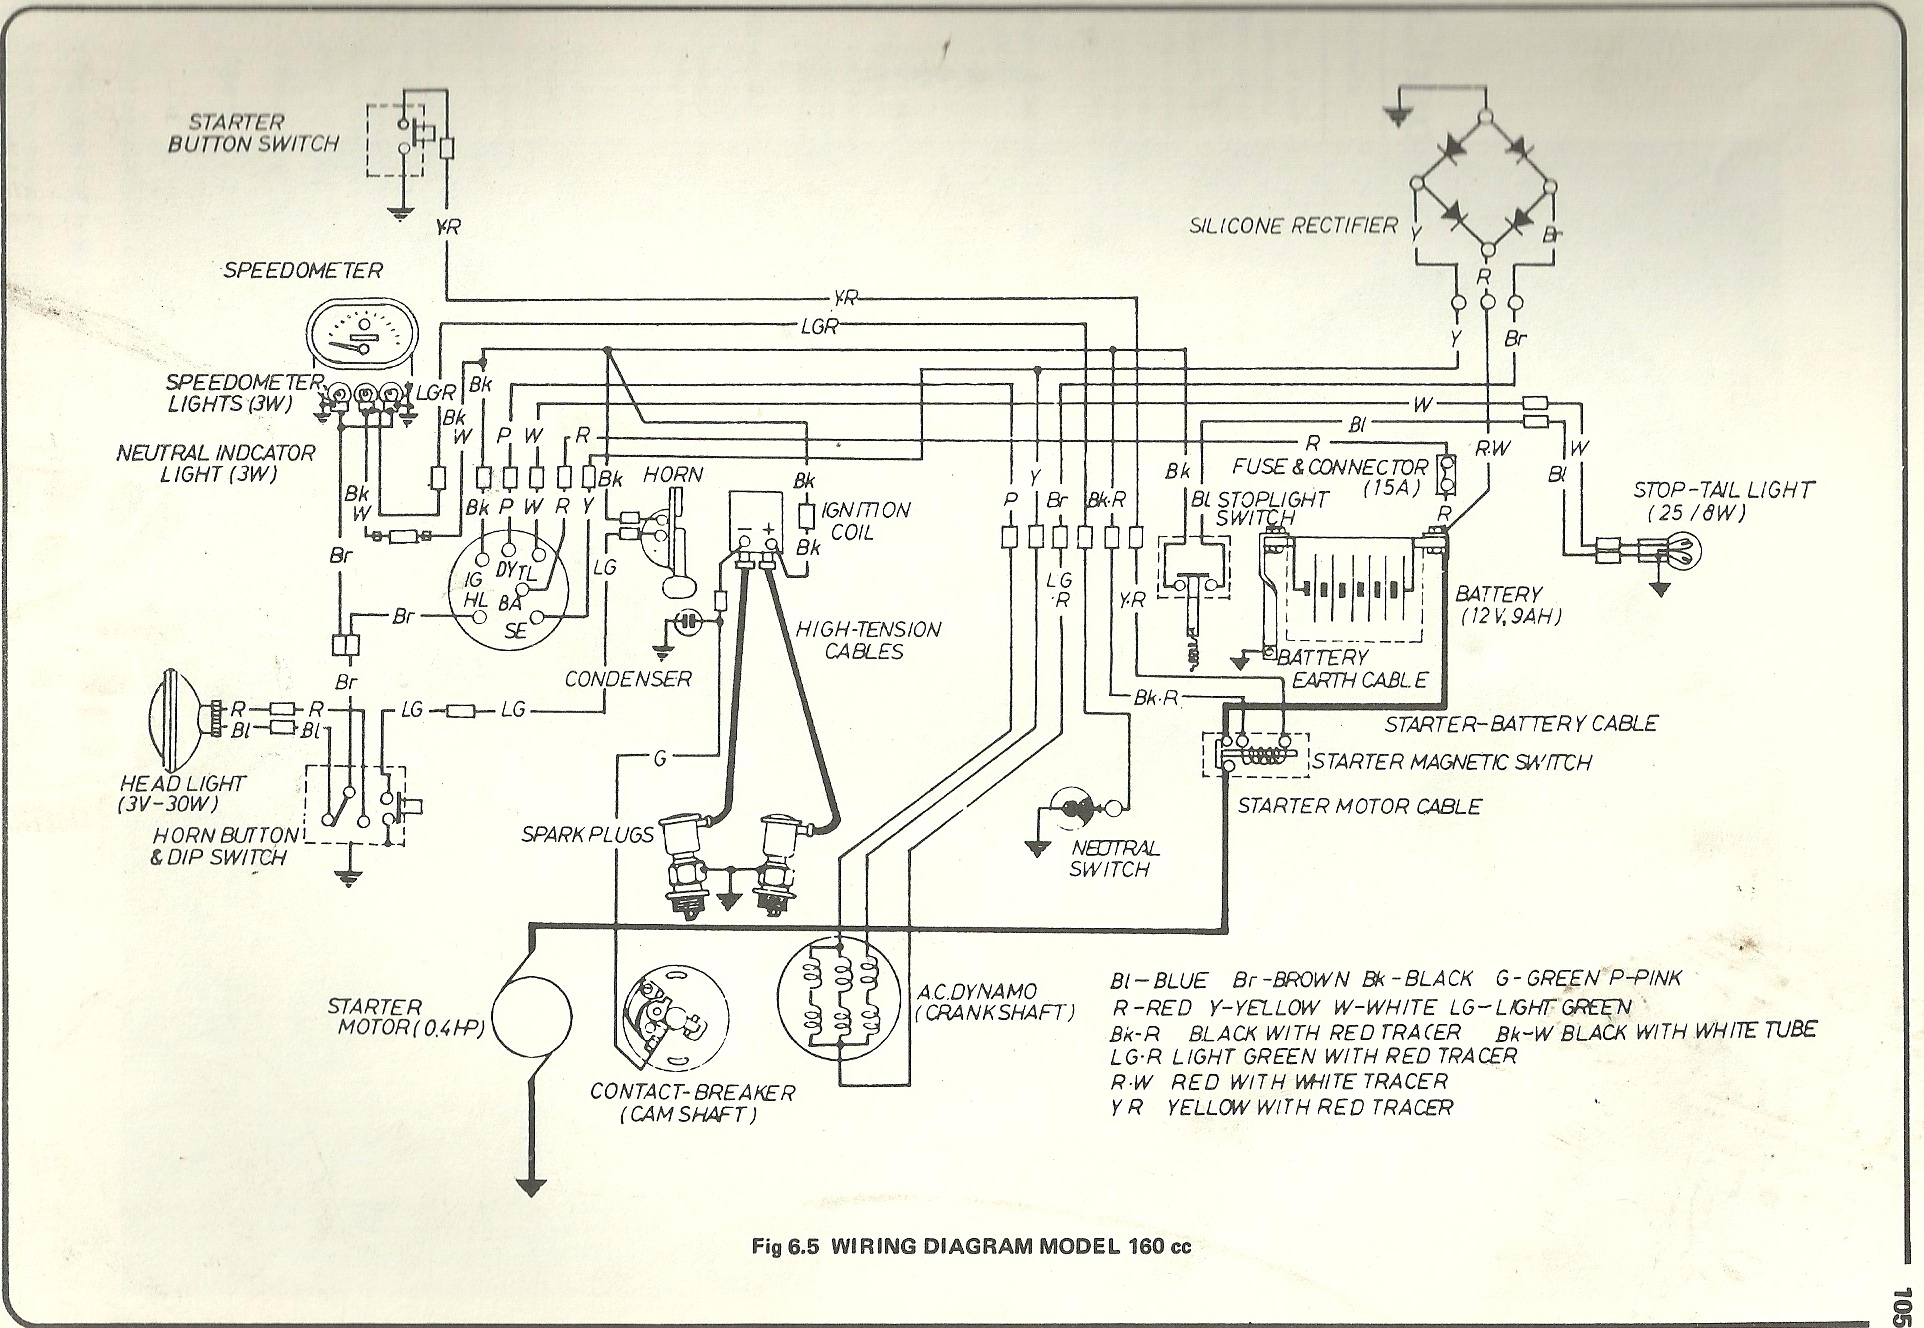 CB1602 wiring diagrams honda ct90 wiring diagram at n-0.co